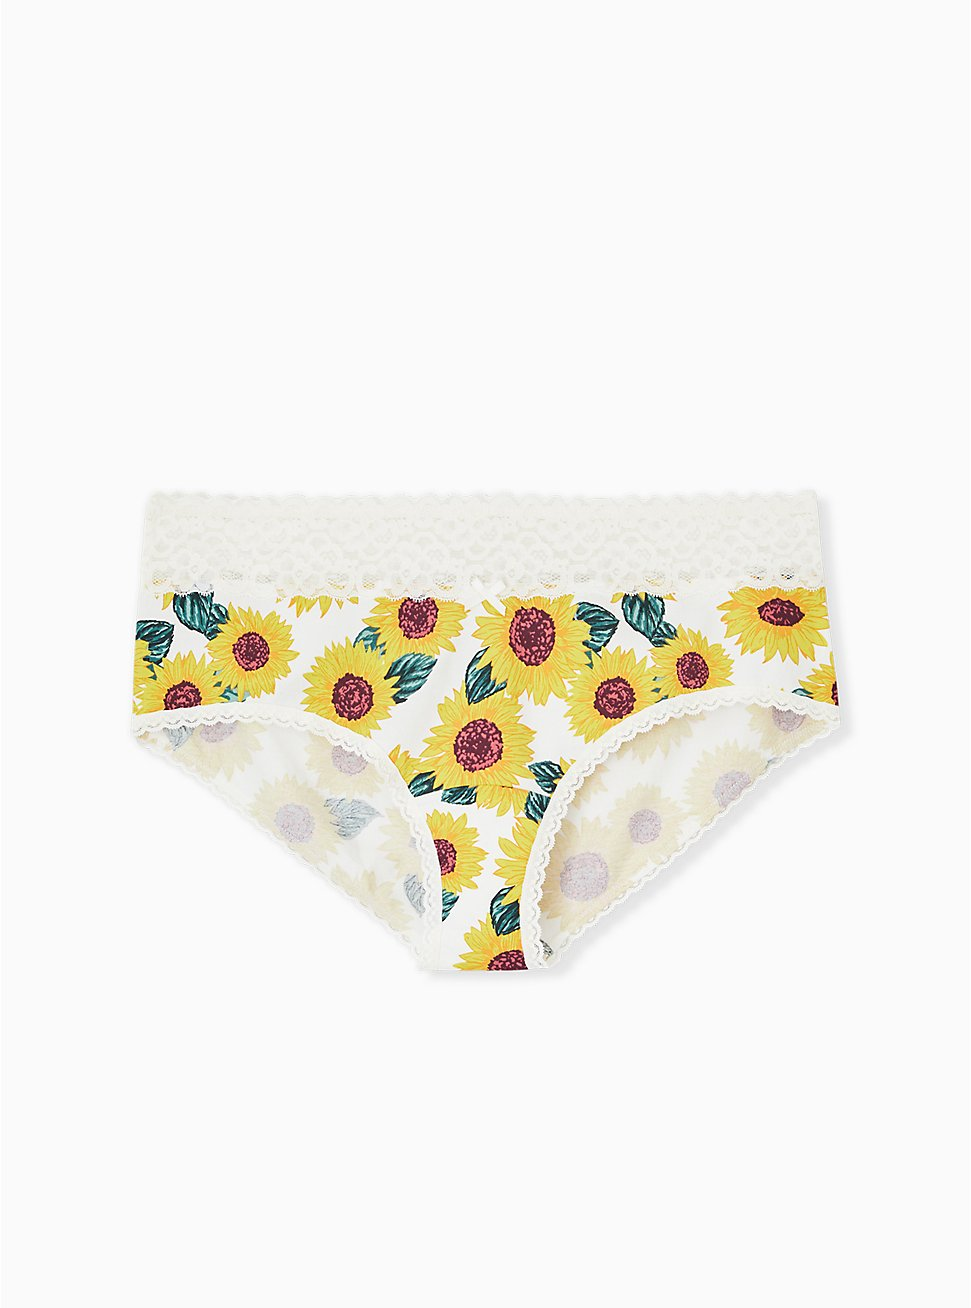 Ivory Sunflower Wide Lace Cotton Cheeky Panty, SUNFLOWERS, hi-res